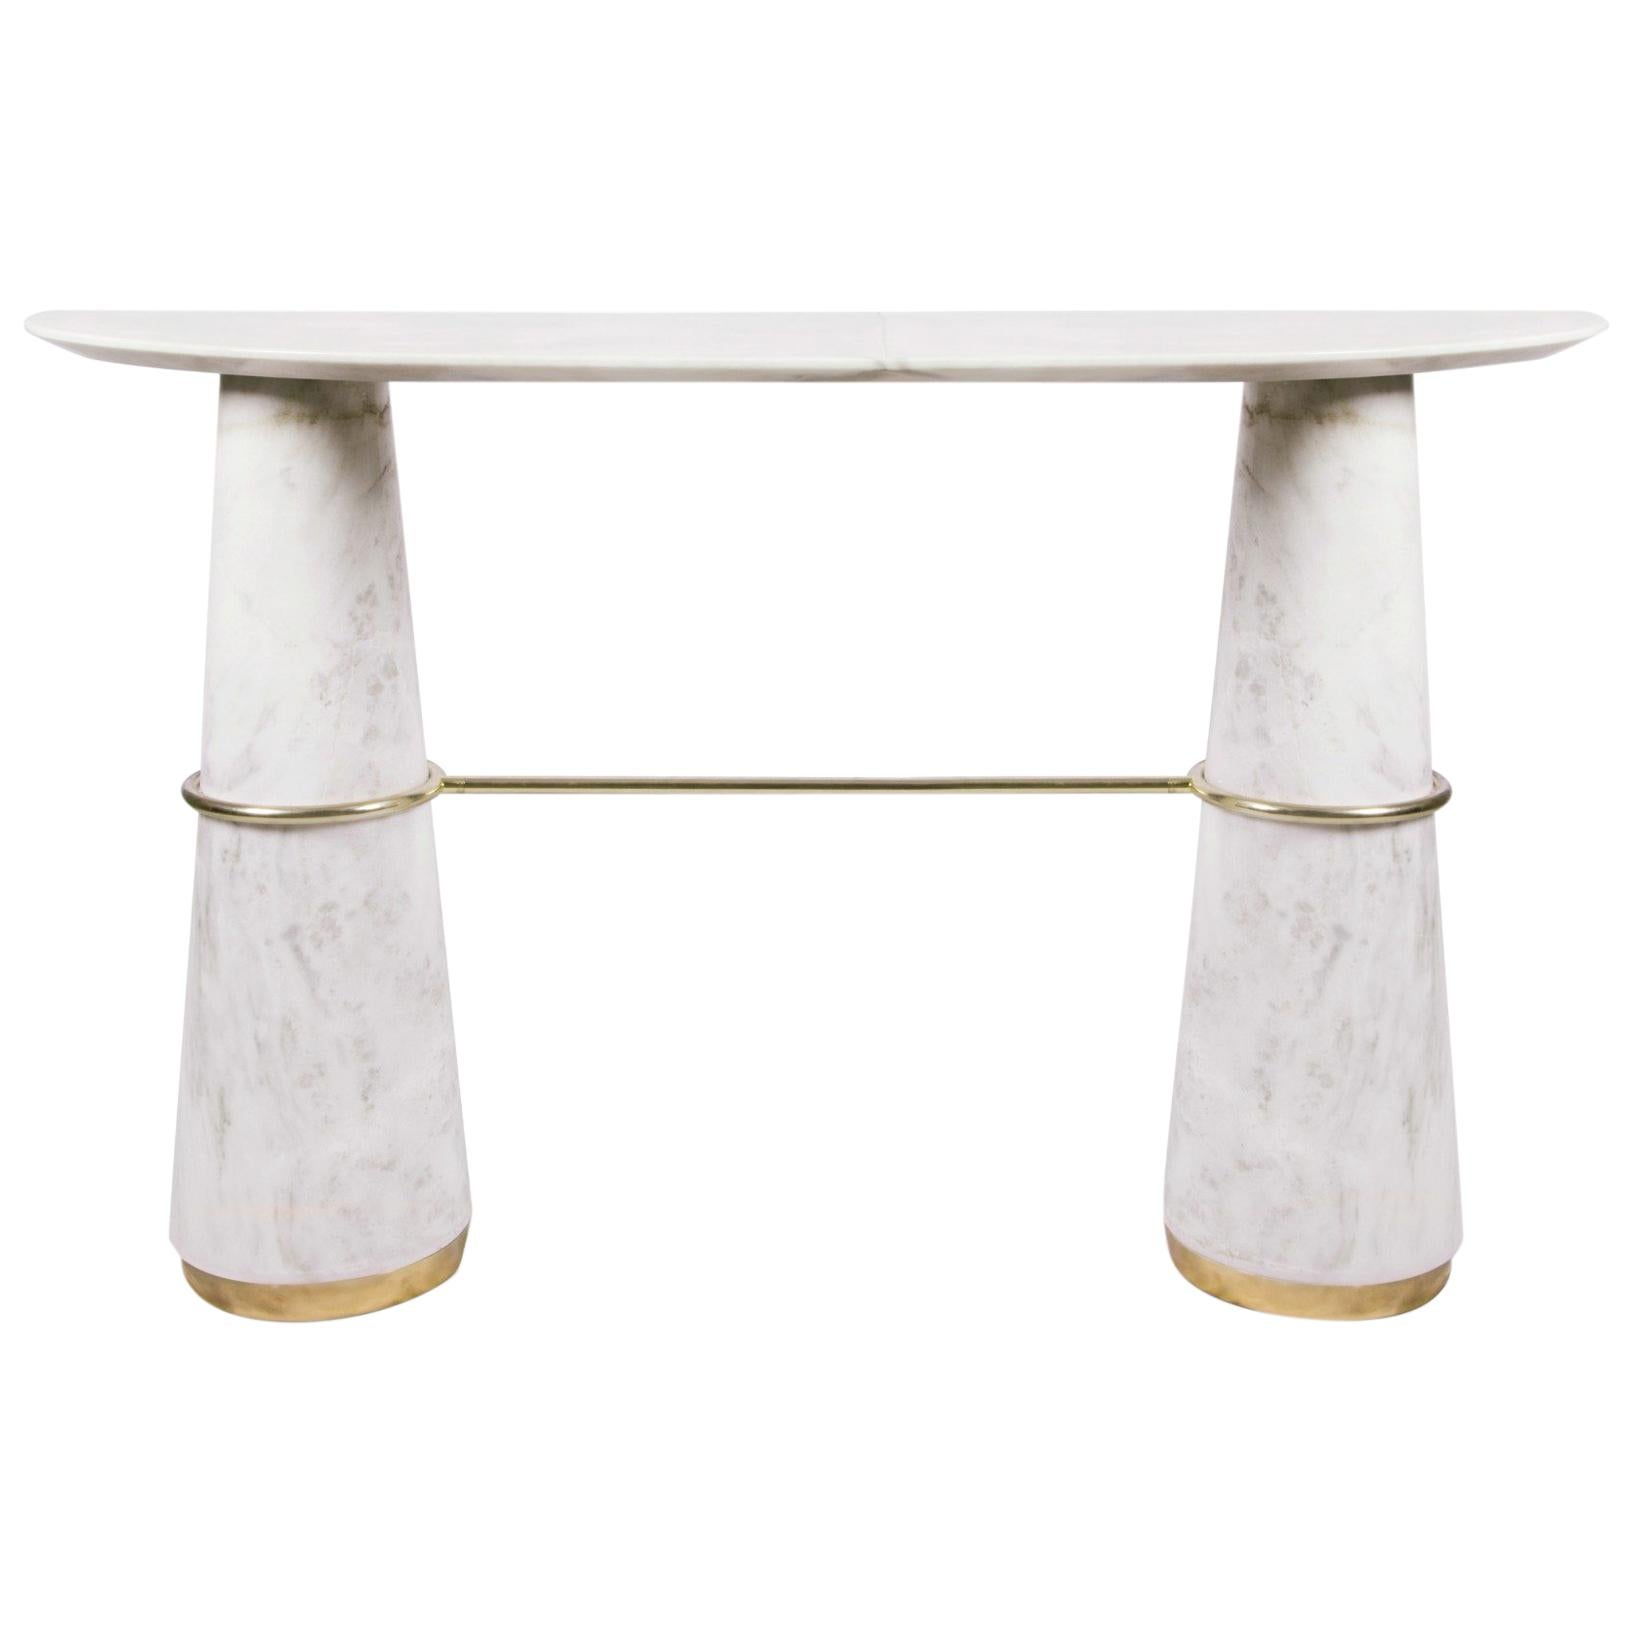 Agra Console Table in Estremoz Marble with Brass Details